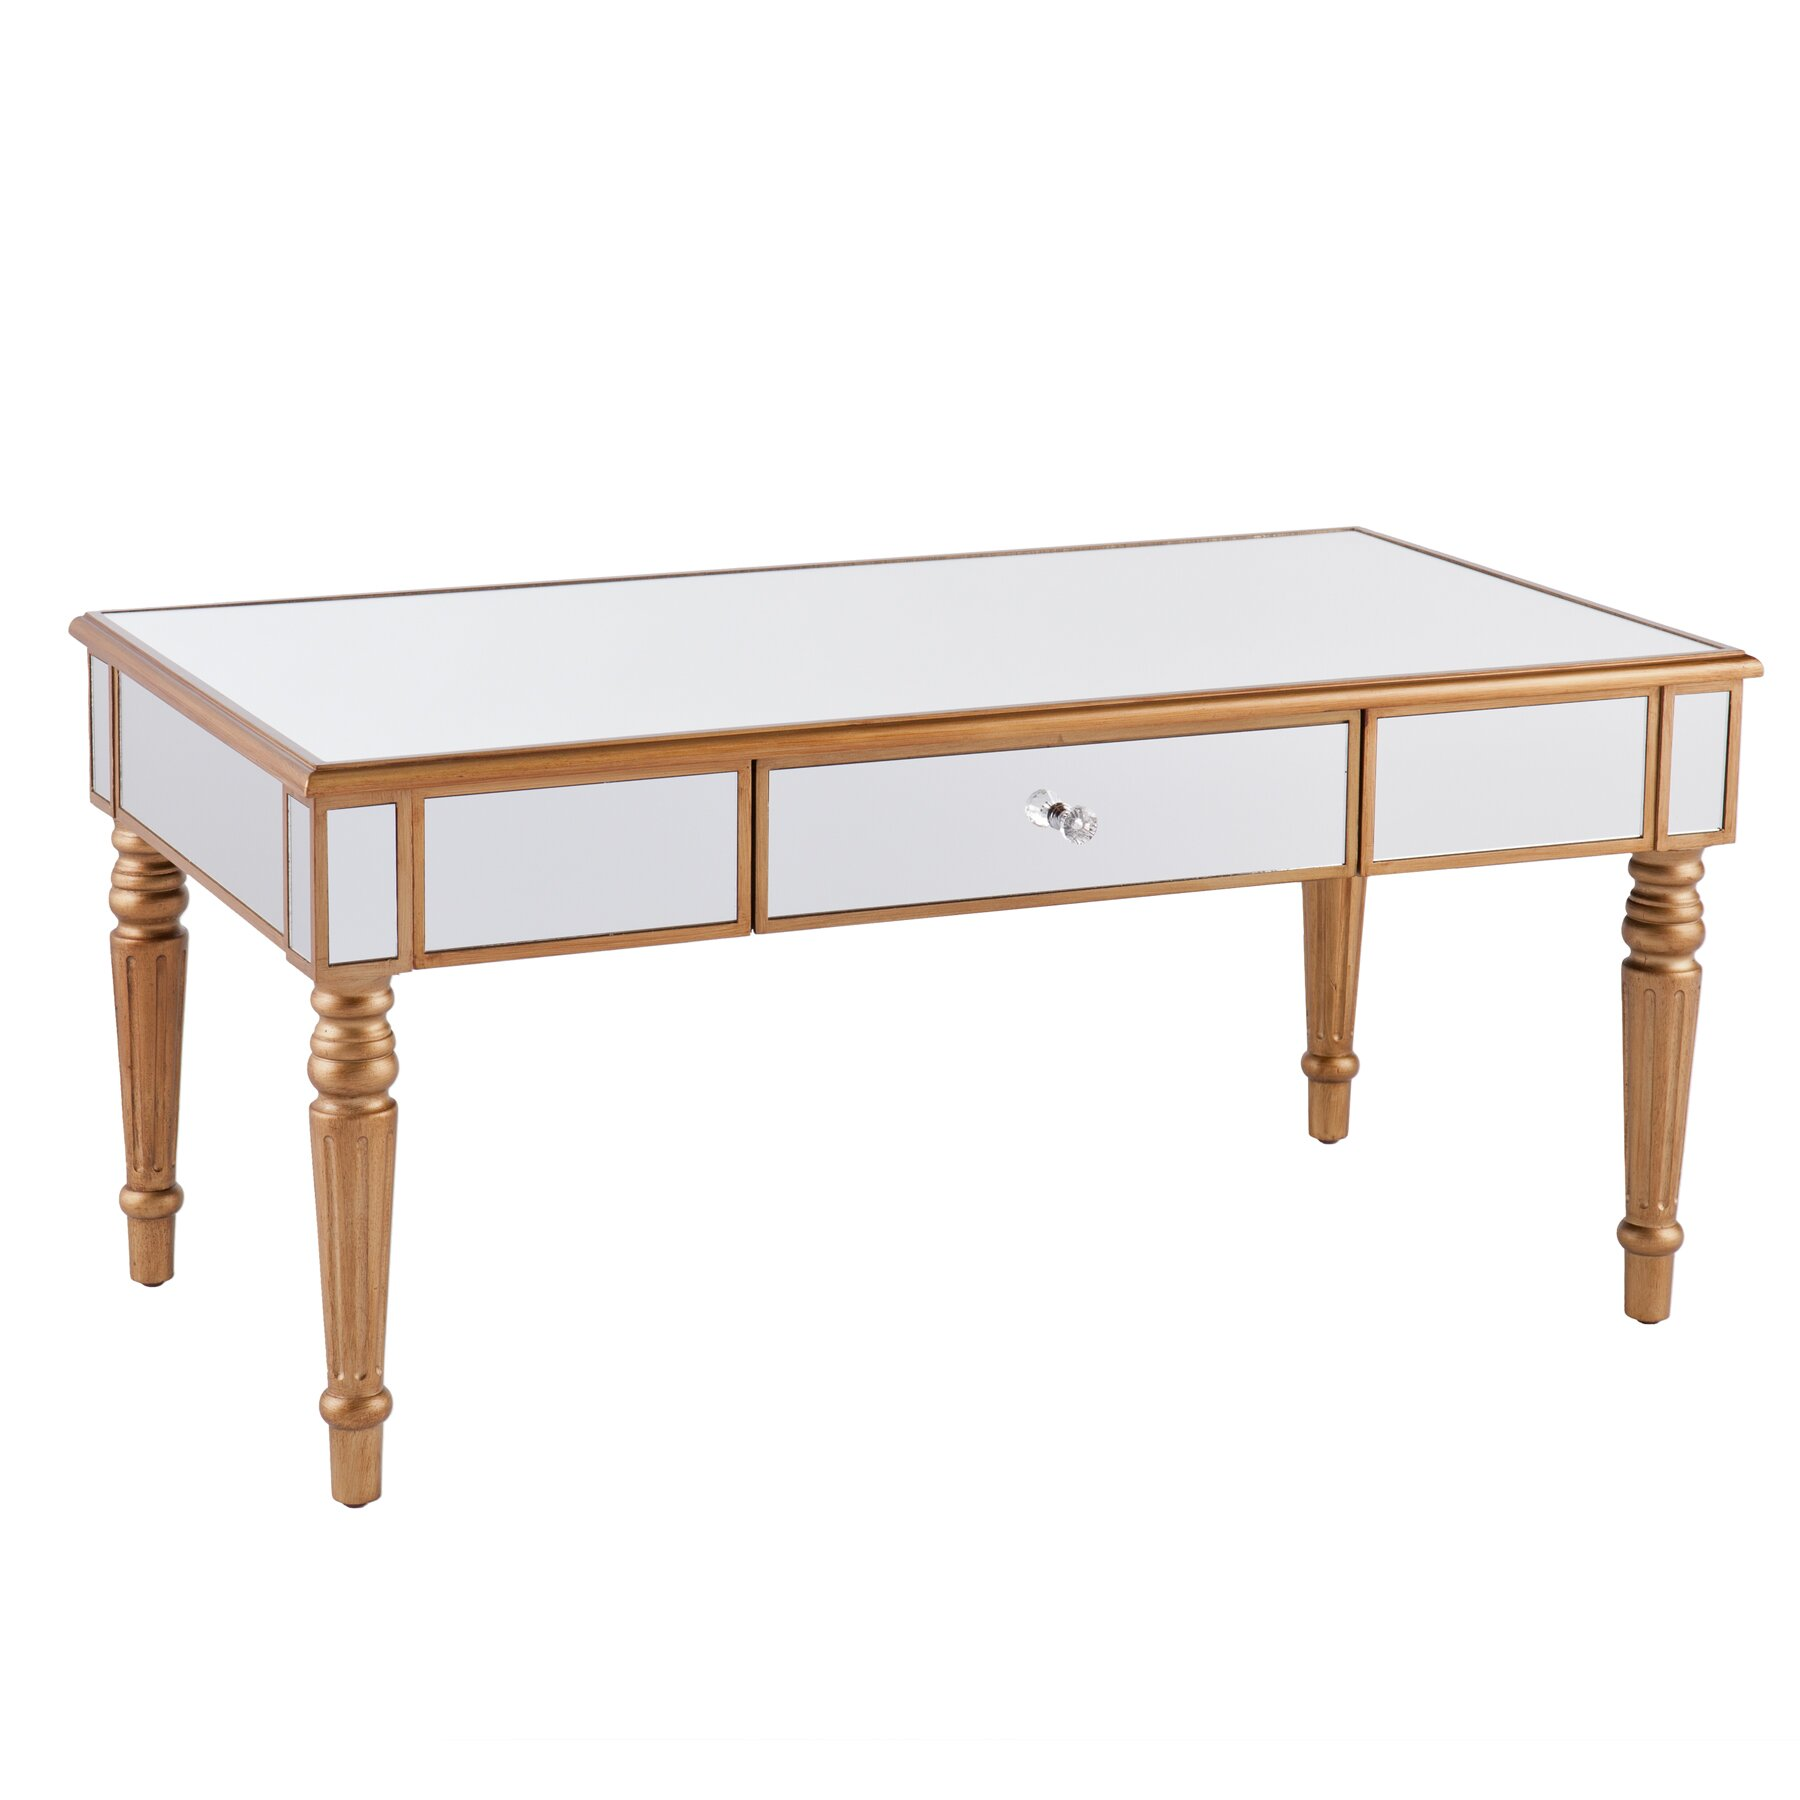 Wildon home r huxley mirrored coffee table reviews wayfair for Wayfair mirrored coffee table